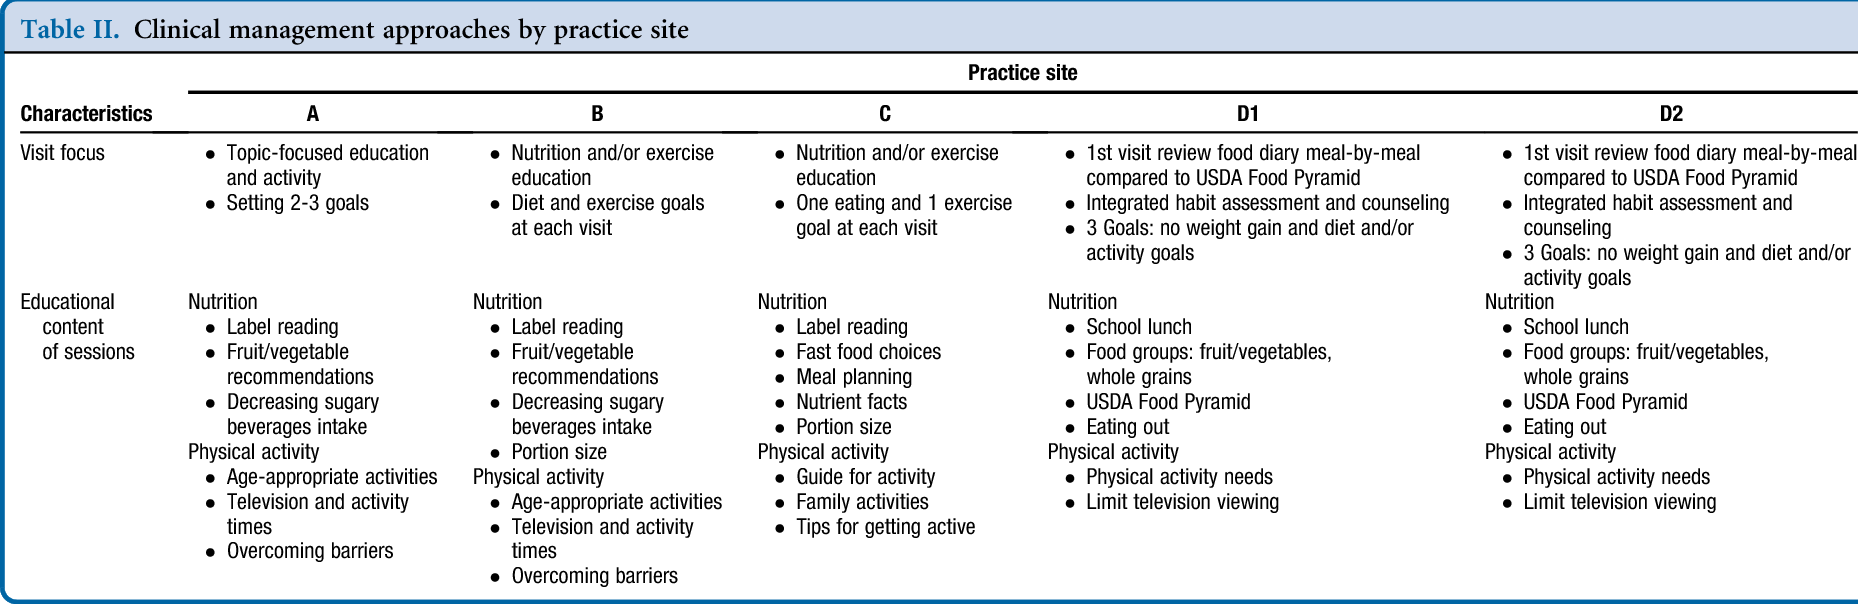 Table II from Obesity care strategies in primary care practices